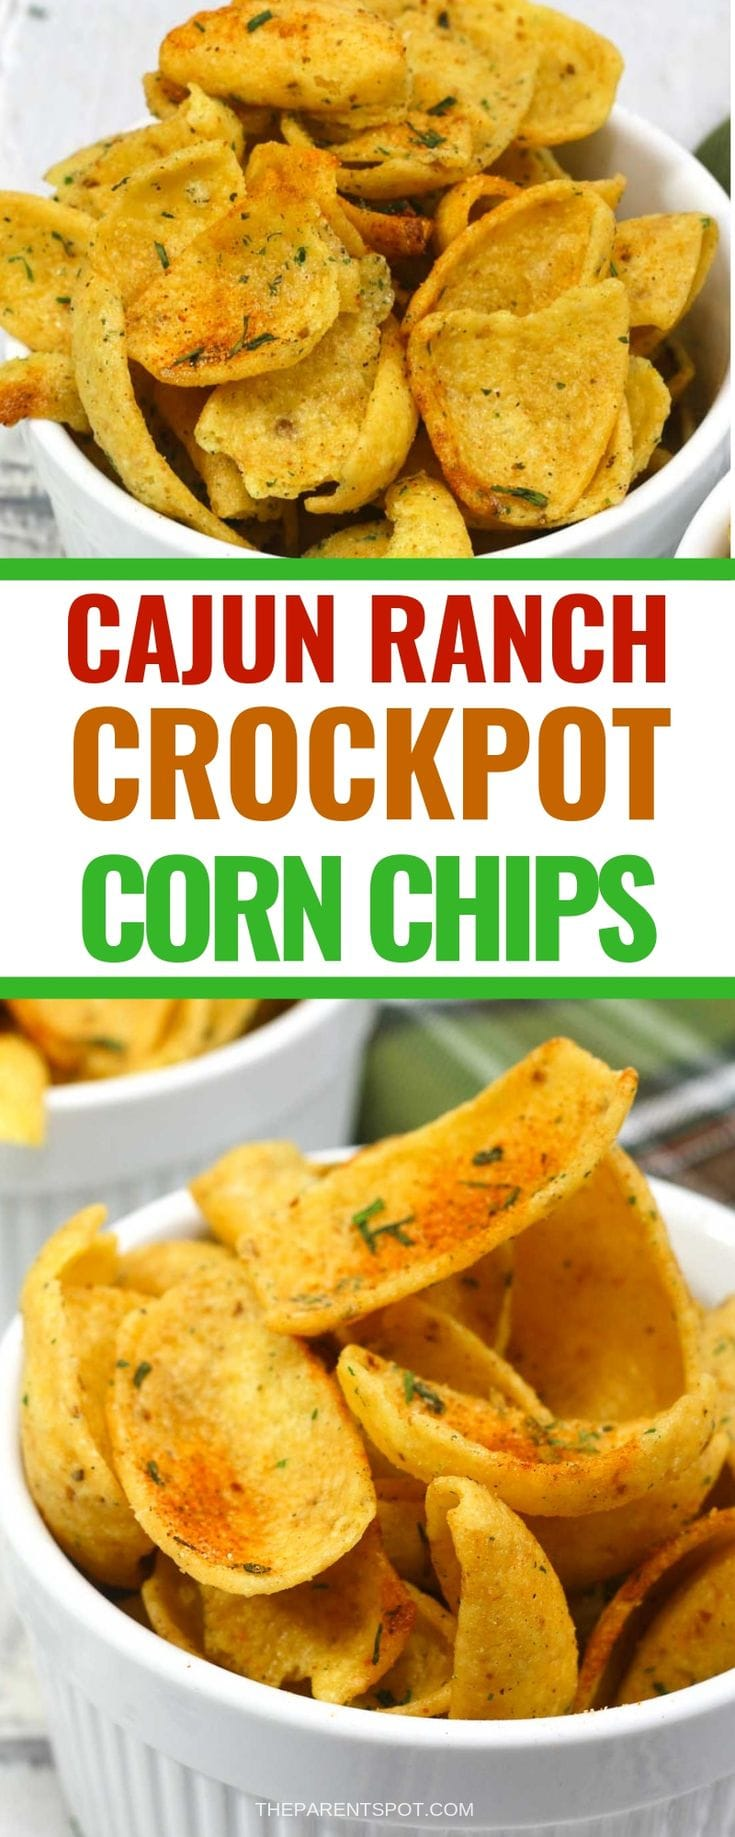 Cajun ranch crockpot corn chips